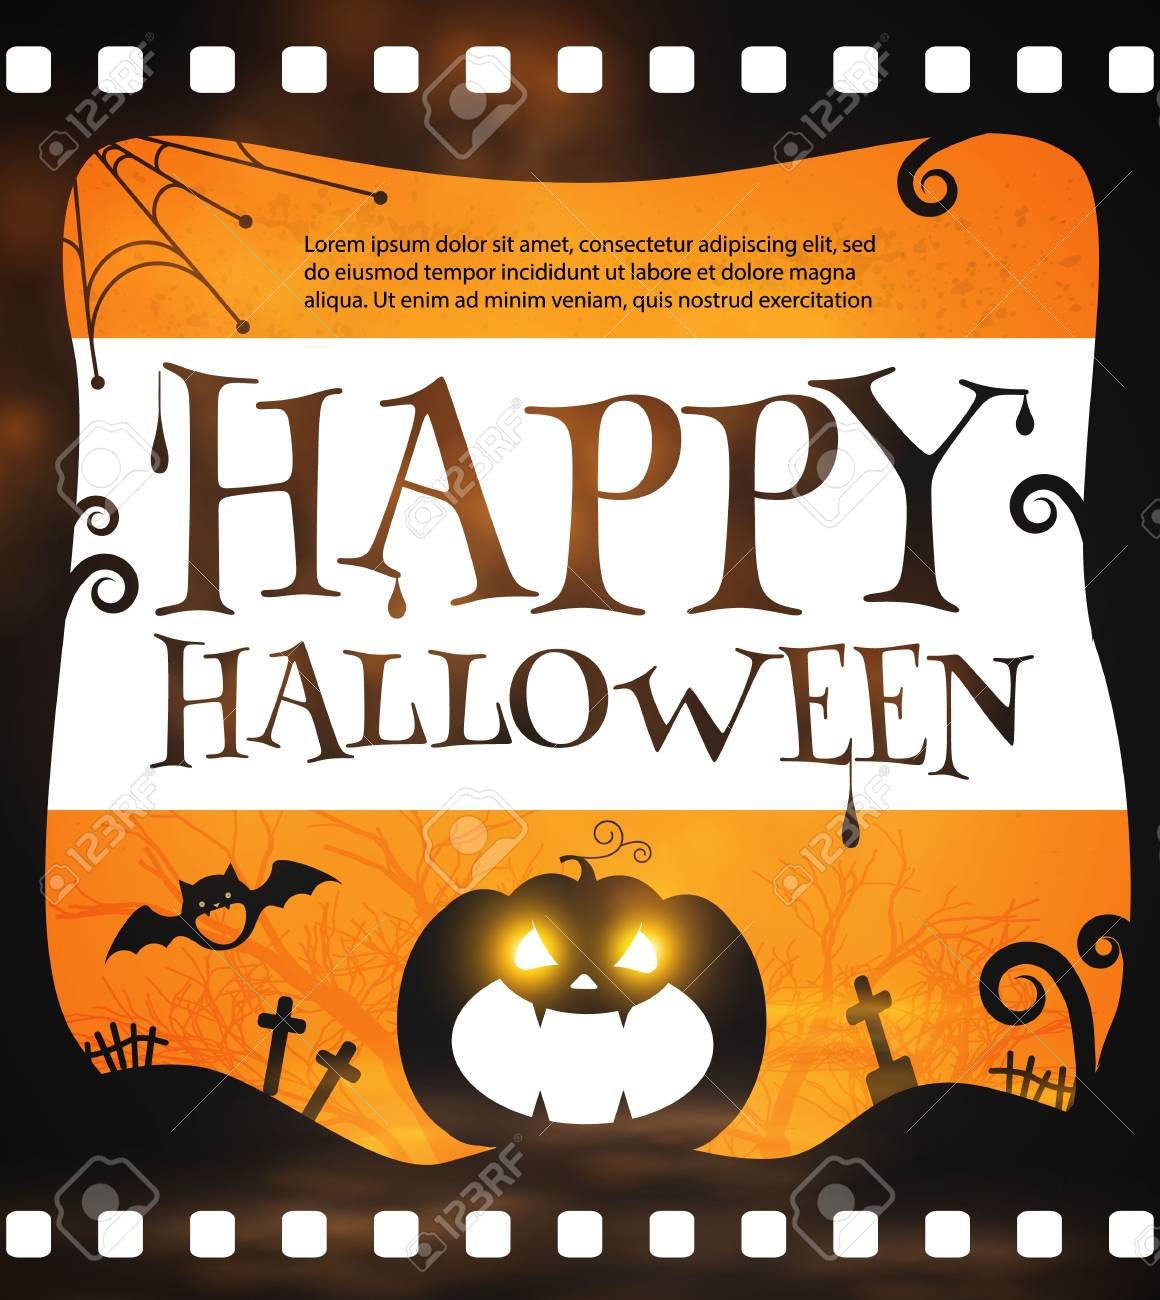 Happy Halloween Poster Template Spooky Party Flyer With Pumpkin And Bats Vector Illustration Stock